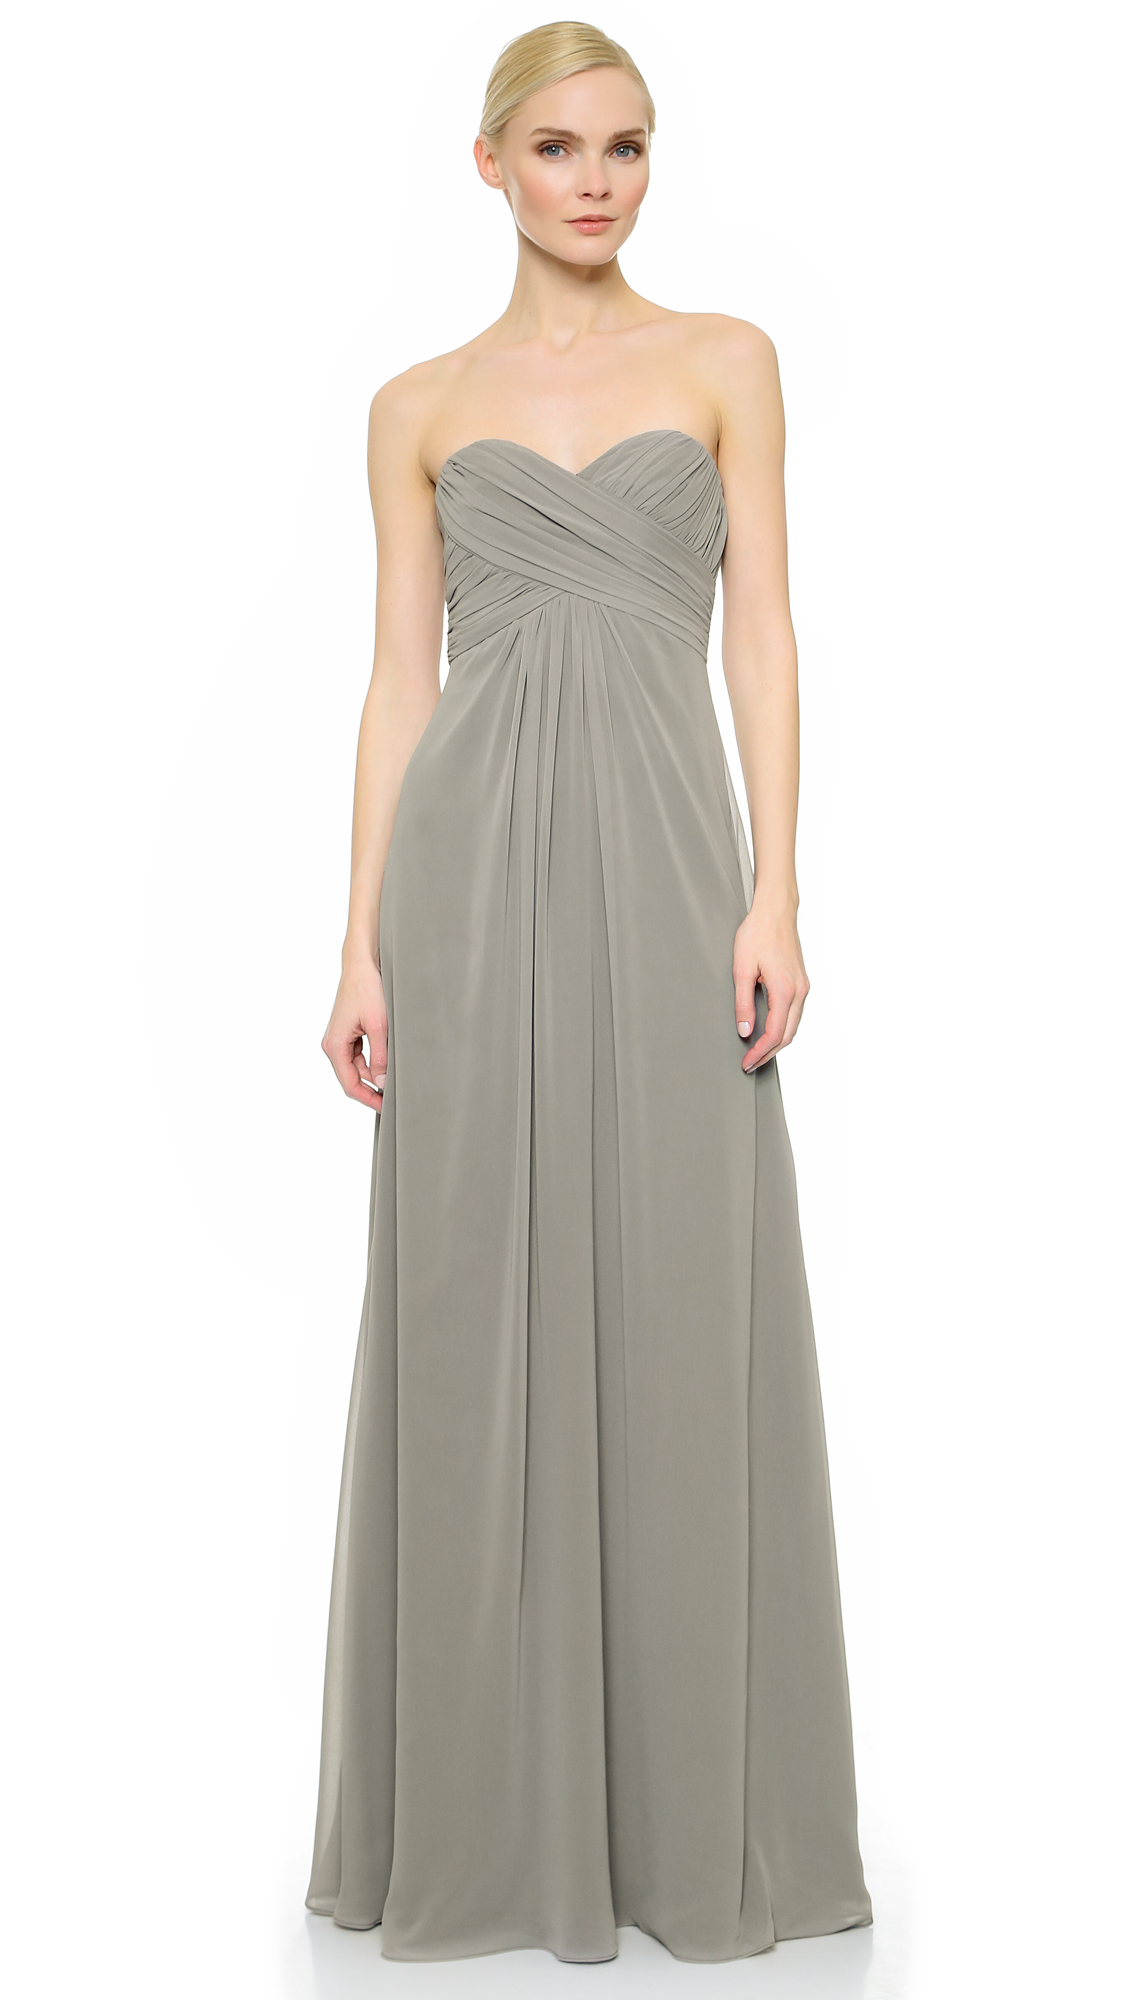 Monique lhuillier bridesmaids pleated sweetheart gown shopbop ombrellifo Gallery